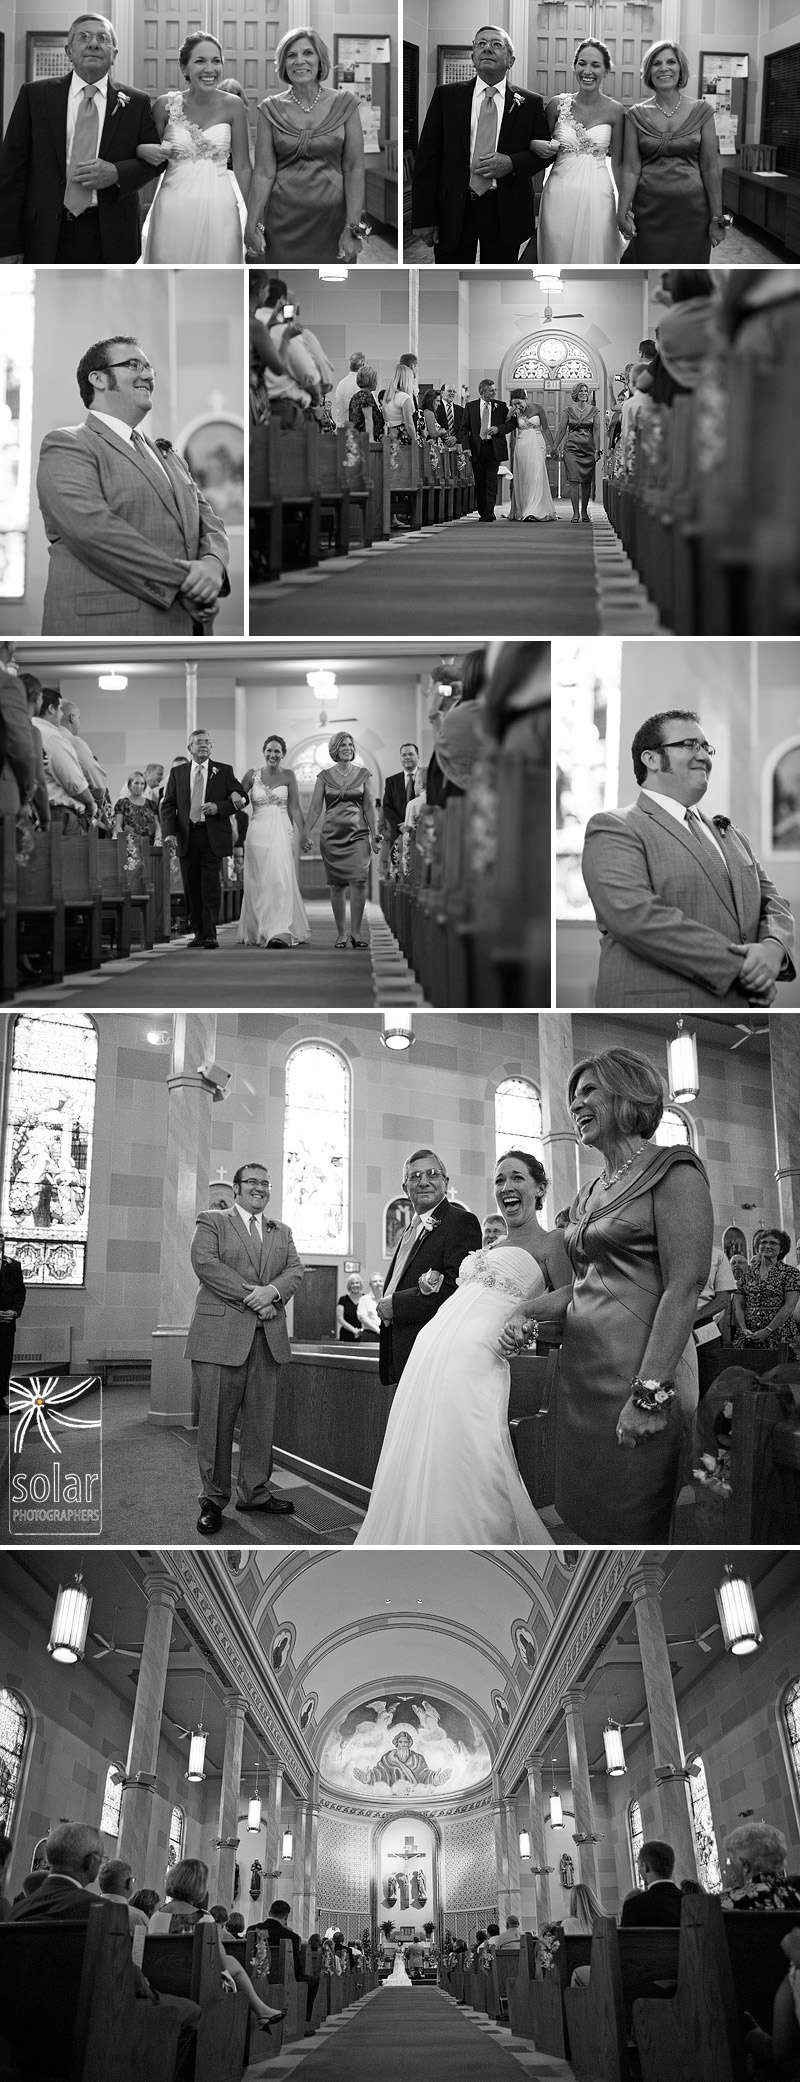 Emotional walk down the aisle by the bride.